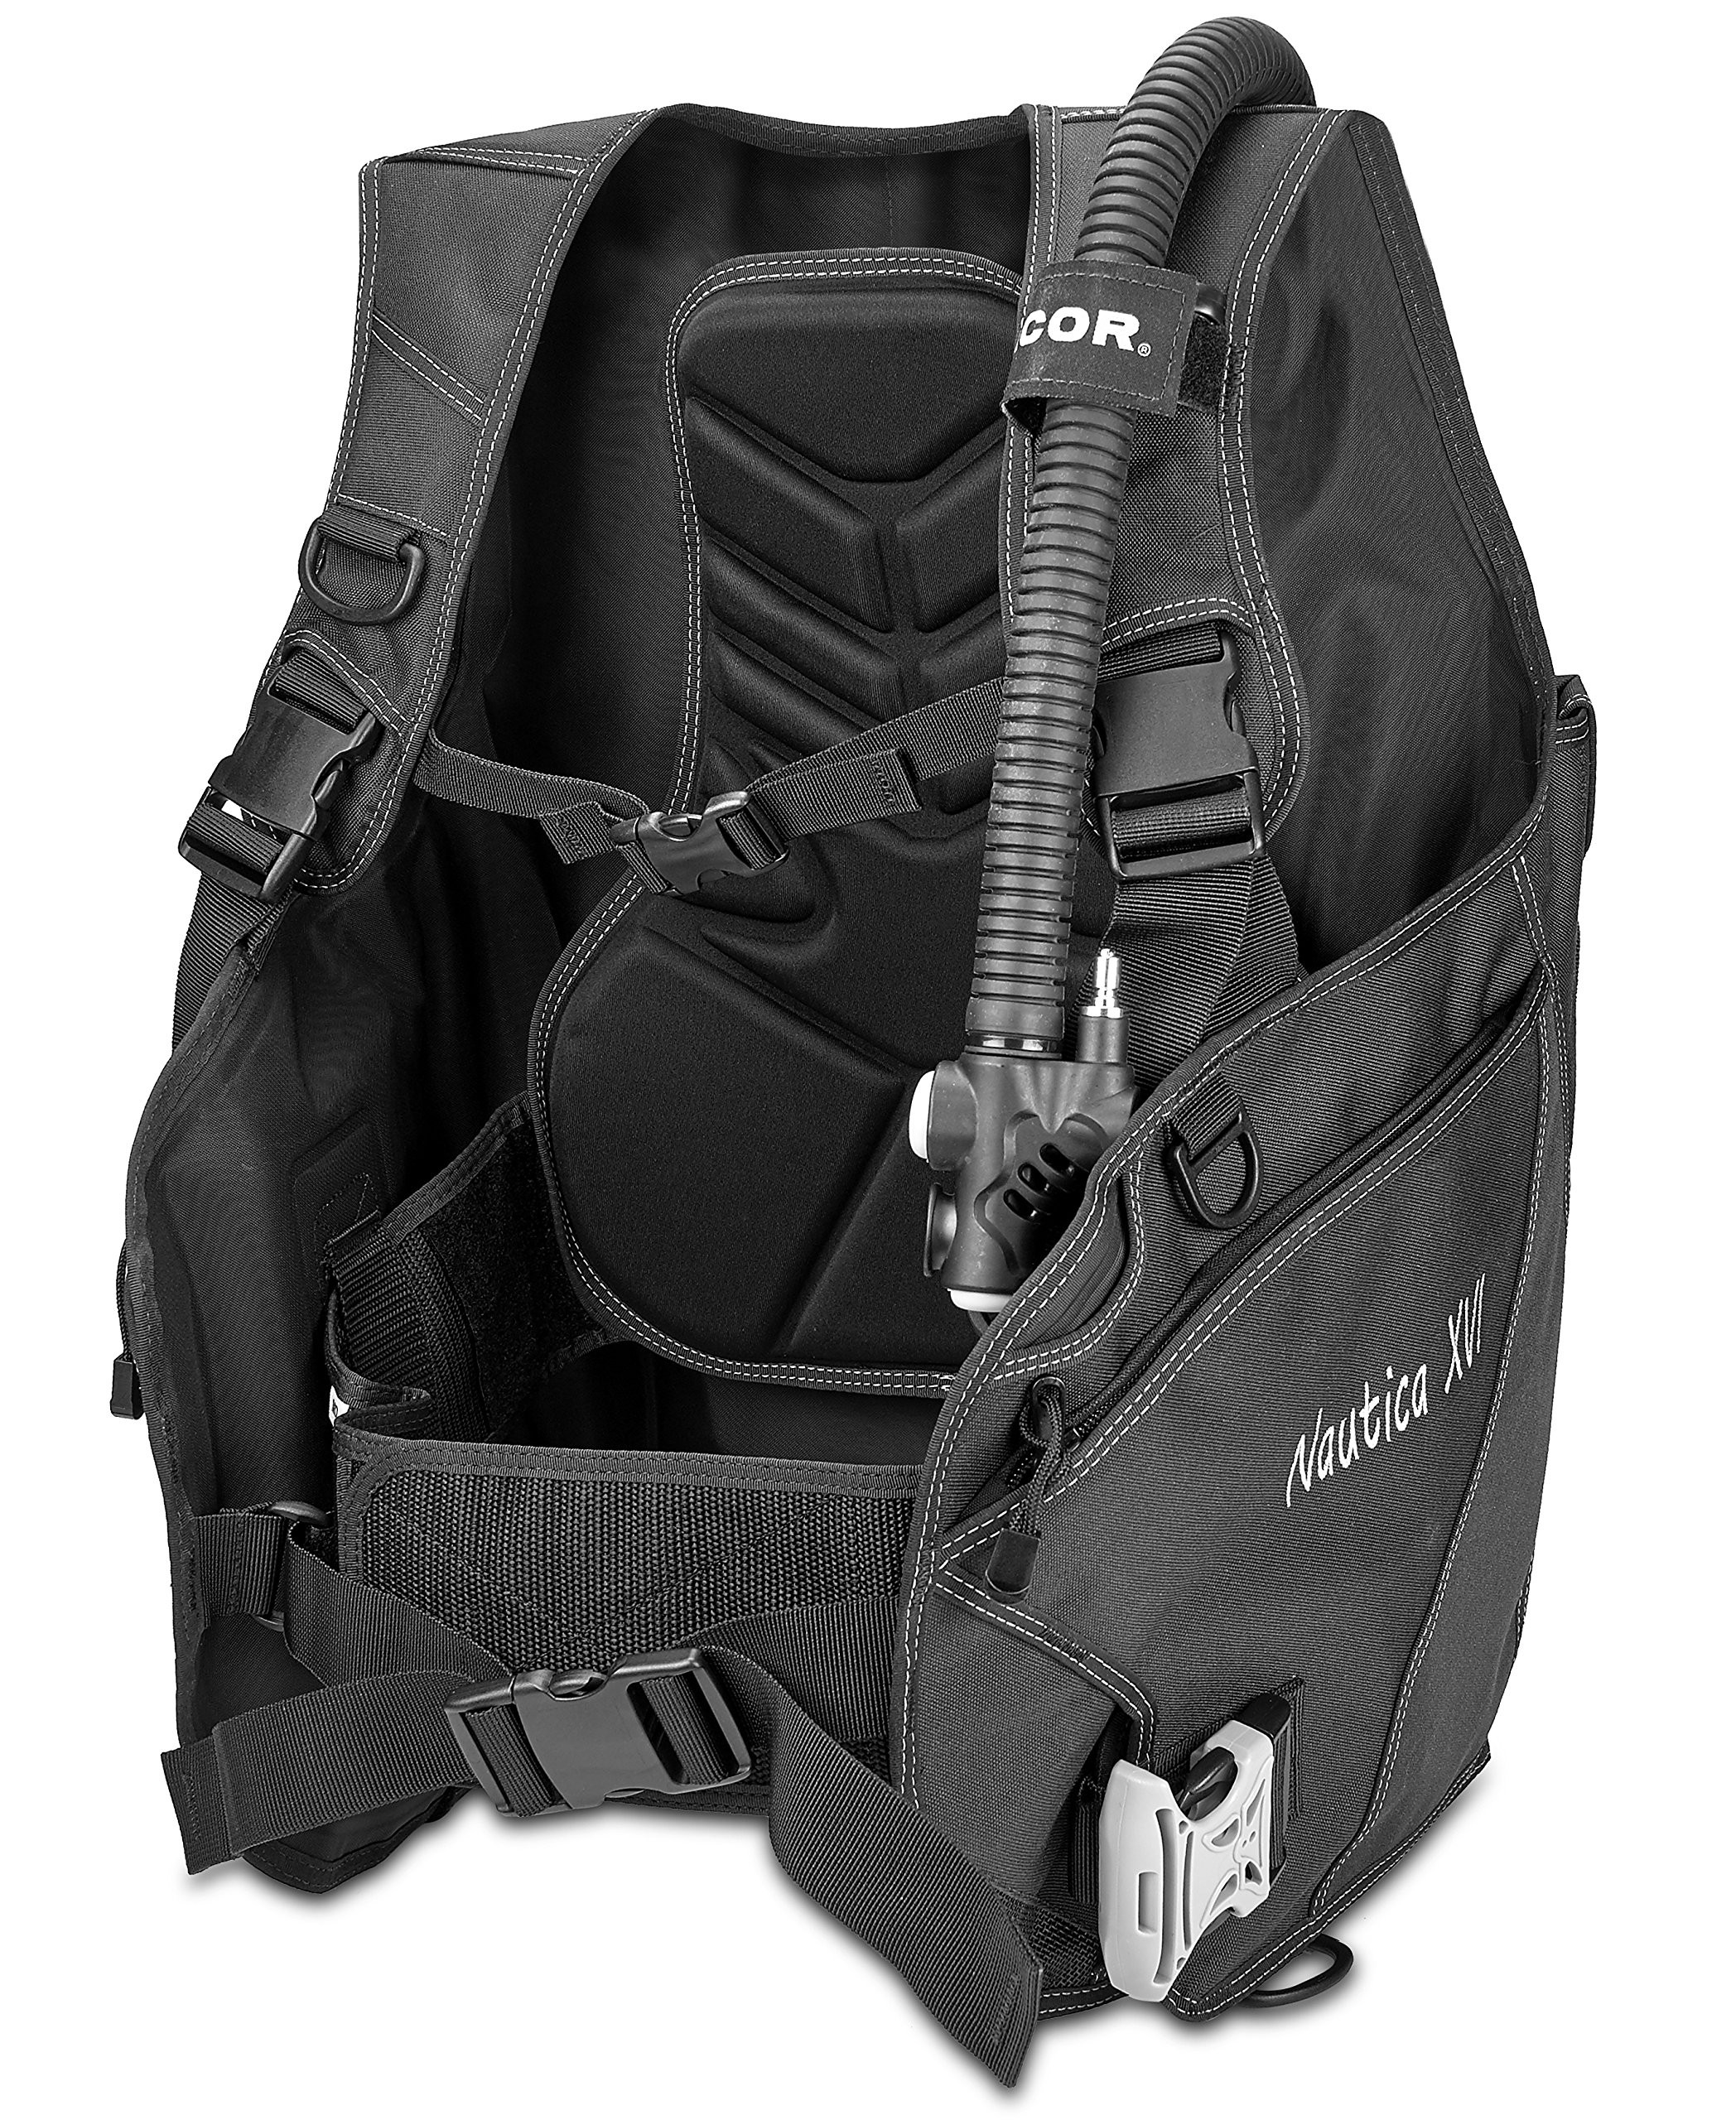 Dacor Nautica XVI Weight Integrated BCD Buoyancy Compensator, Black, Small